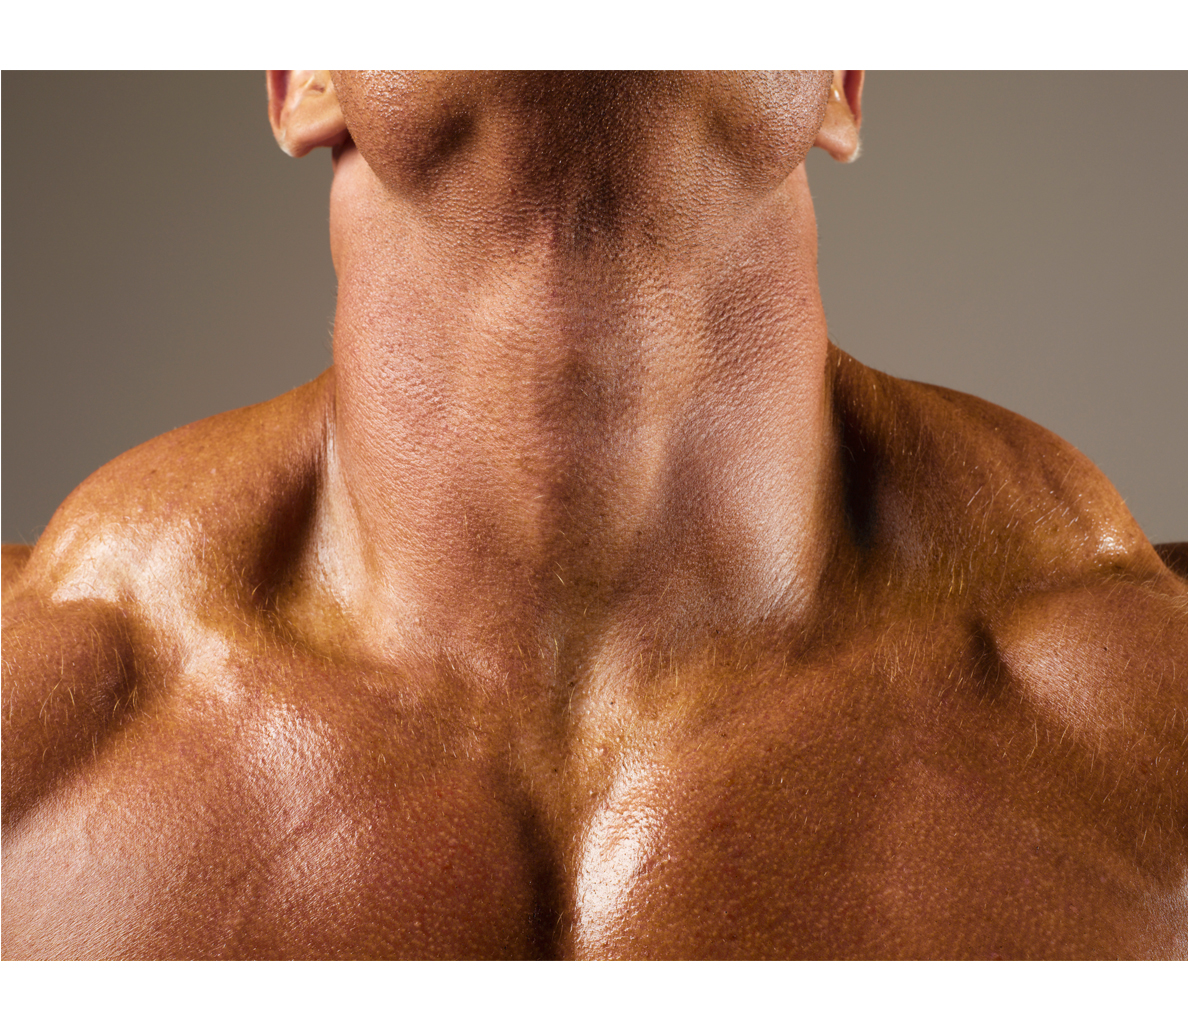 How To Build Your Show Off Muscles